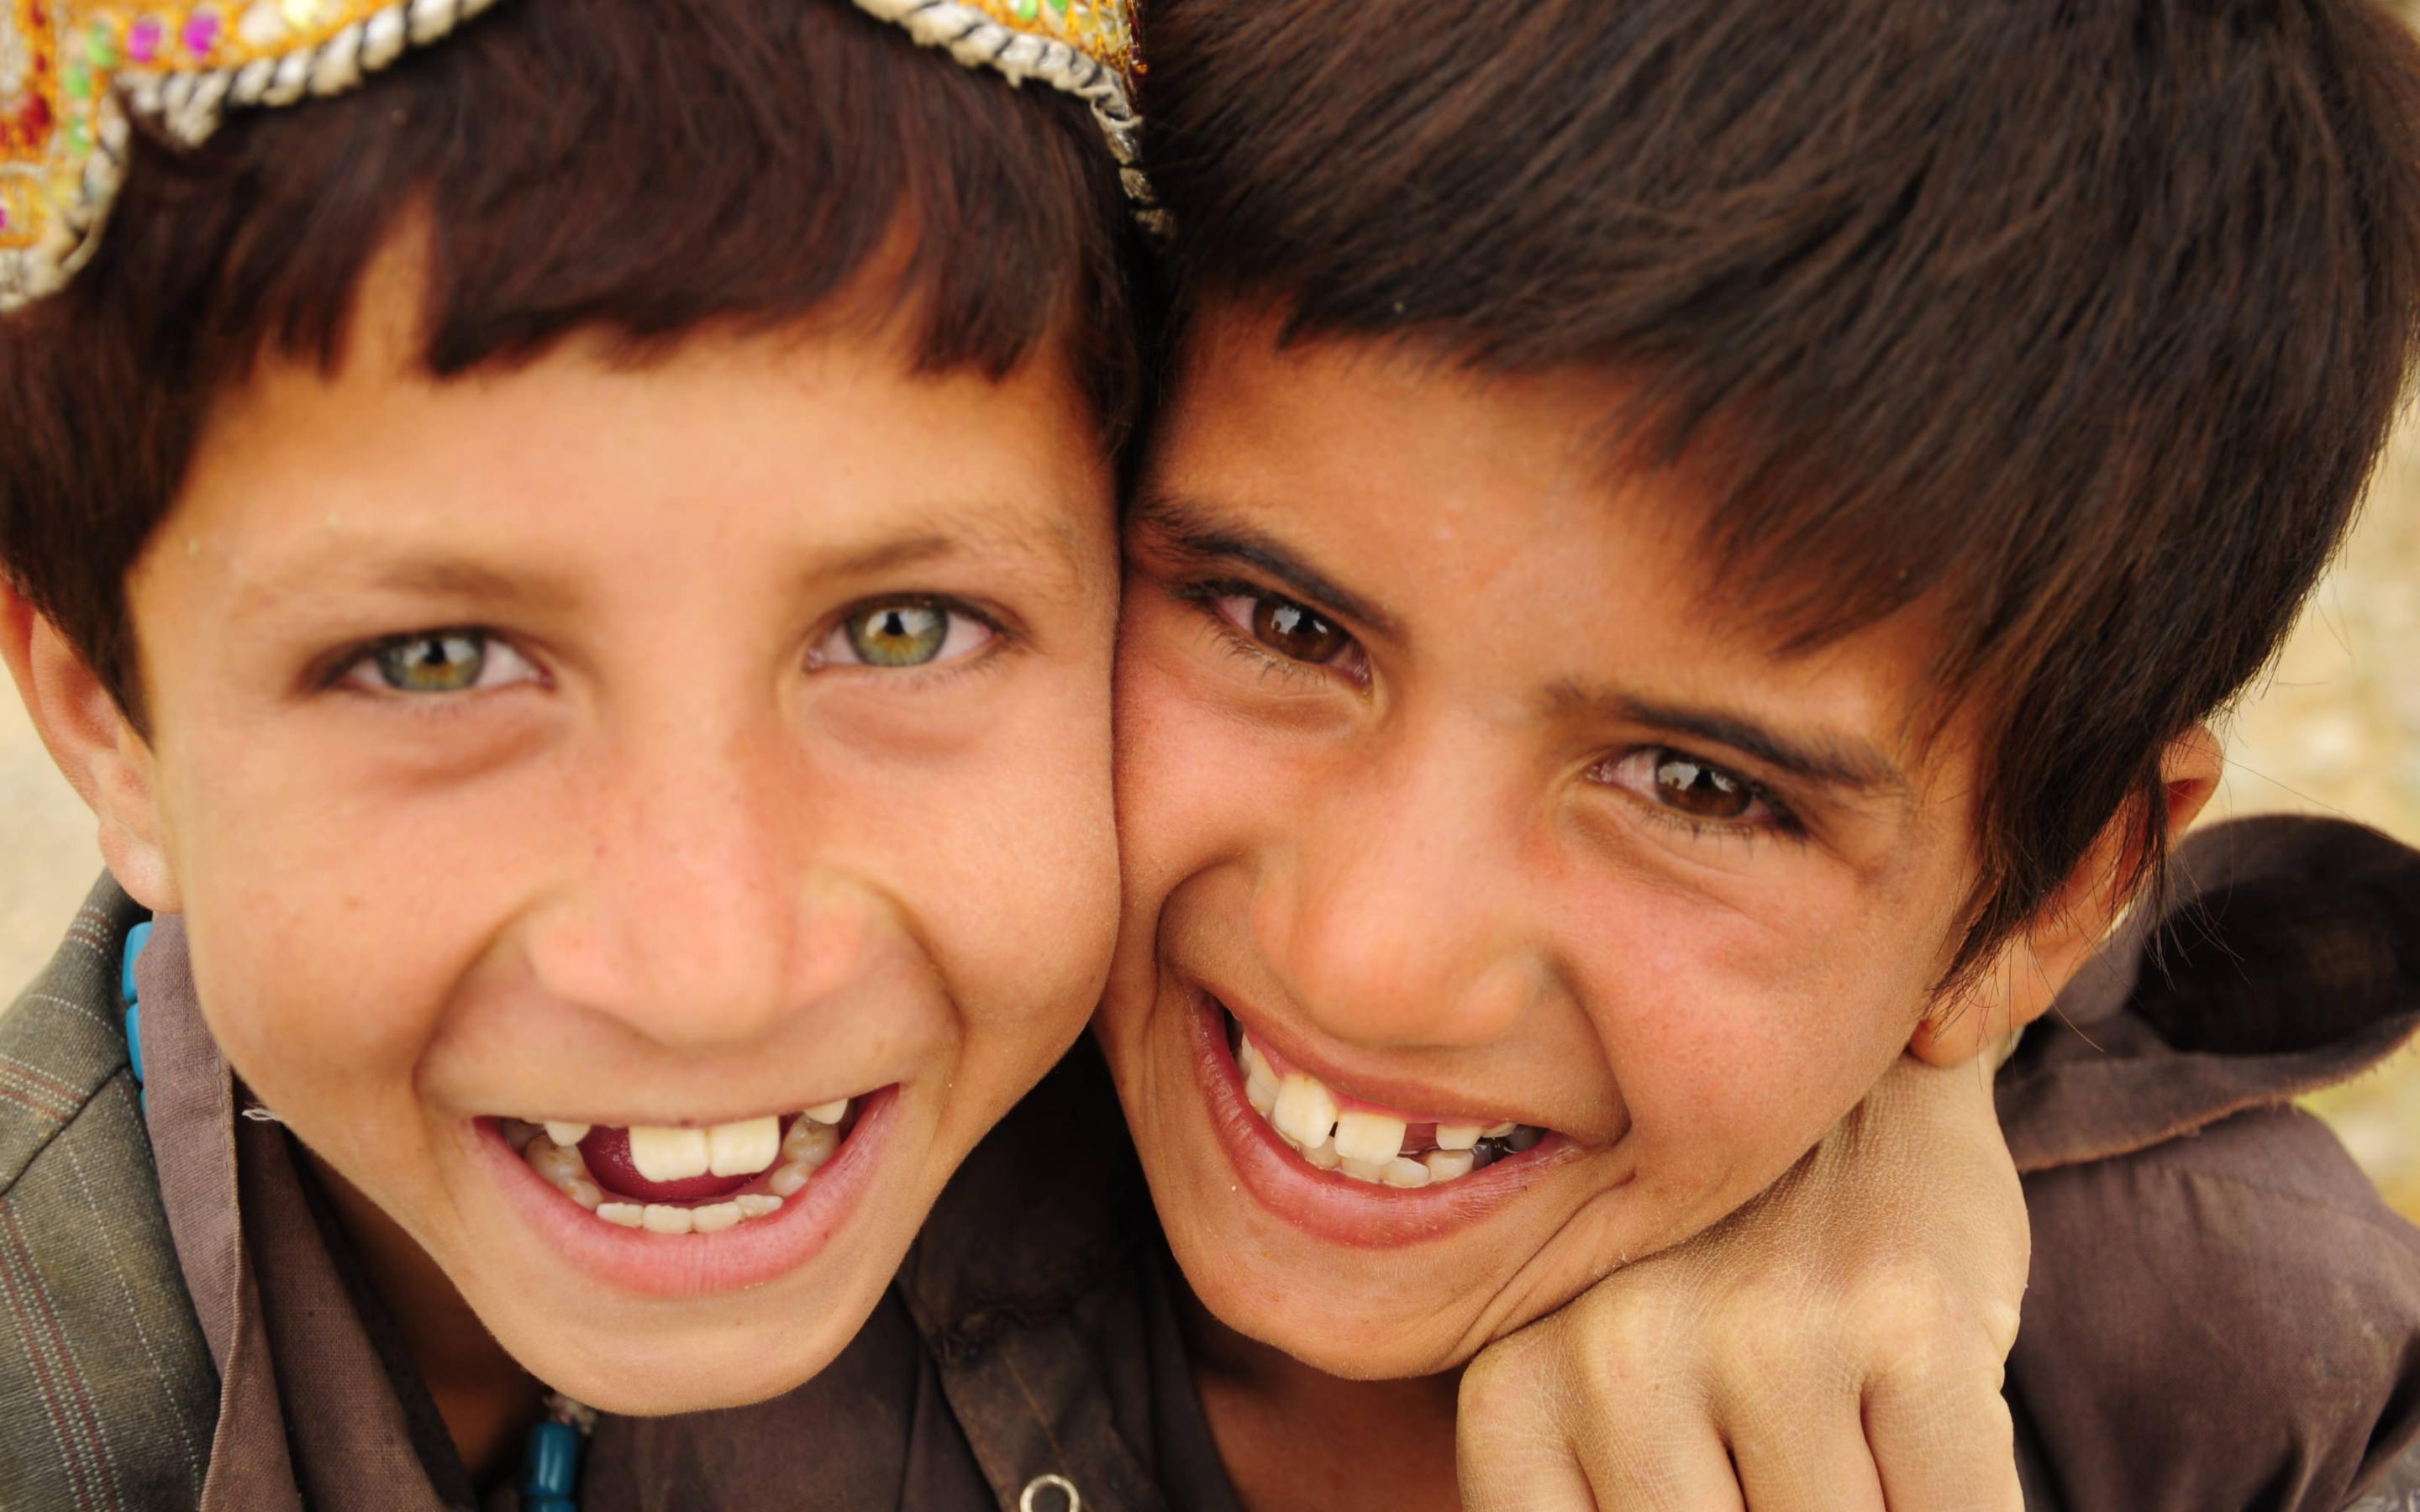 Afghan boys smiling, adoption foster care family, adoption photographer